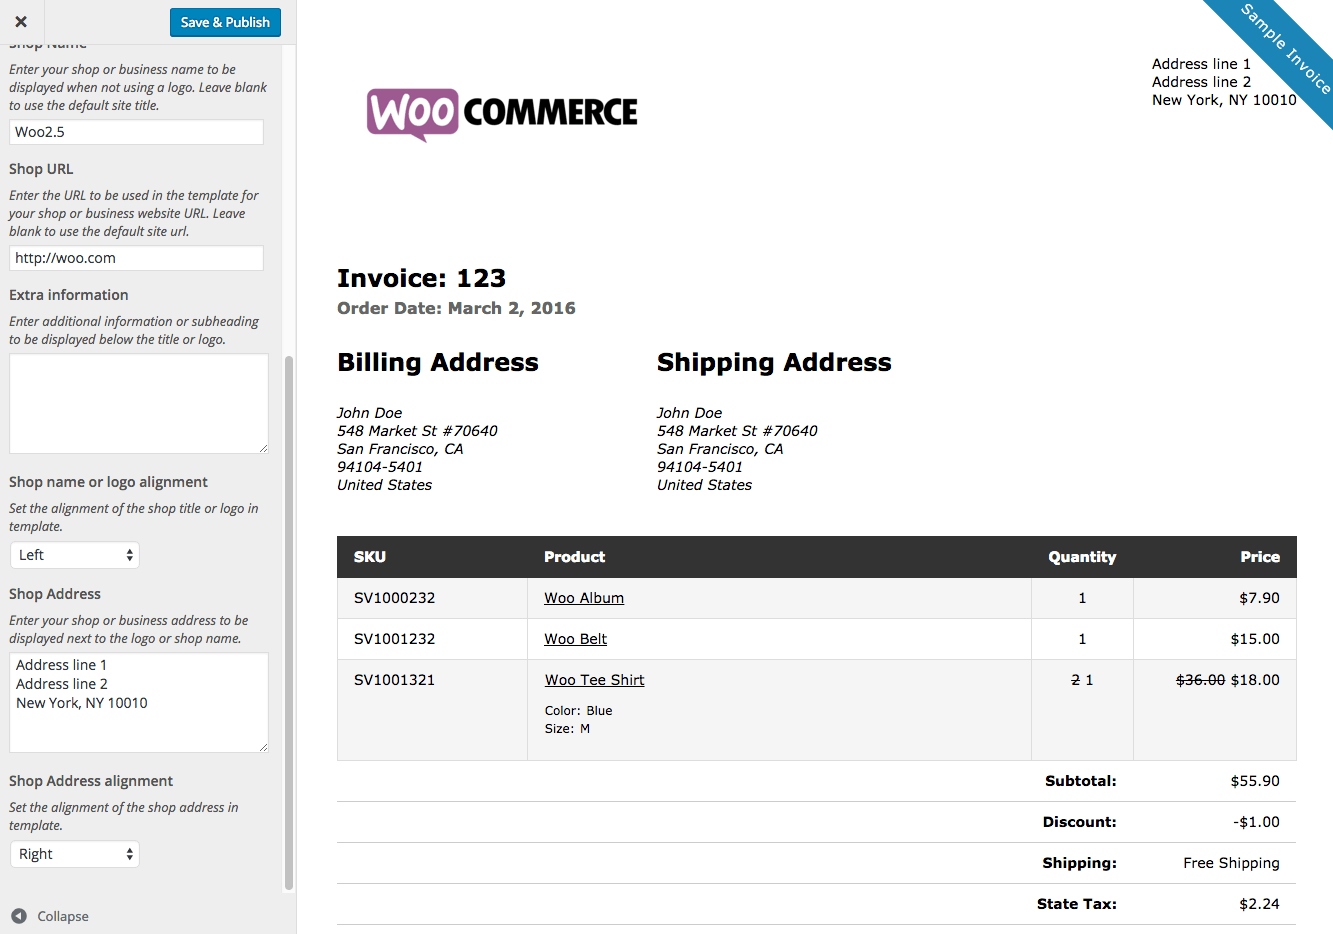 Shopdesignsus  Outstanding Woocommerce Print Invoices Amp Packing Lists  Woocommerce Docs With Magnificent Woocommerce Print Invoices  Packing Lists Customizer With Comely Bill Invoice Template Free Also How To Make Invoices On Excel In Addition Gst Invoice Requirements And Invoice Template On Excel As Well As Invoice Schedule Template Additionally Vehicle Invoice Template From Docswoocommercecom With Shopdesignsus  Magnificent Woocommerce Print Invoices Amp Packing Lists  Woocommerce Docs With Comely Woocommerce Print Invoices  Packing Lists Customizer And Outstanding Bill Invoice Template Free Also How To Make Invoices On Excel In Addition Gst Invoice Requirements From Docswoocommercecom